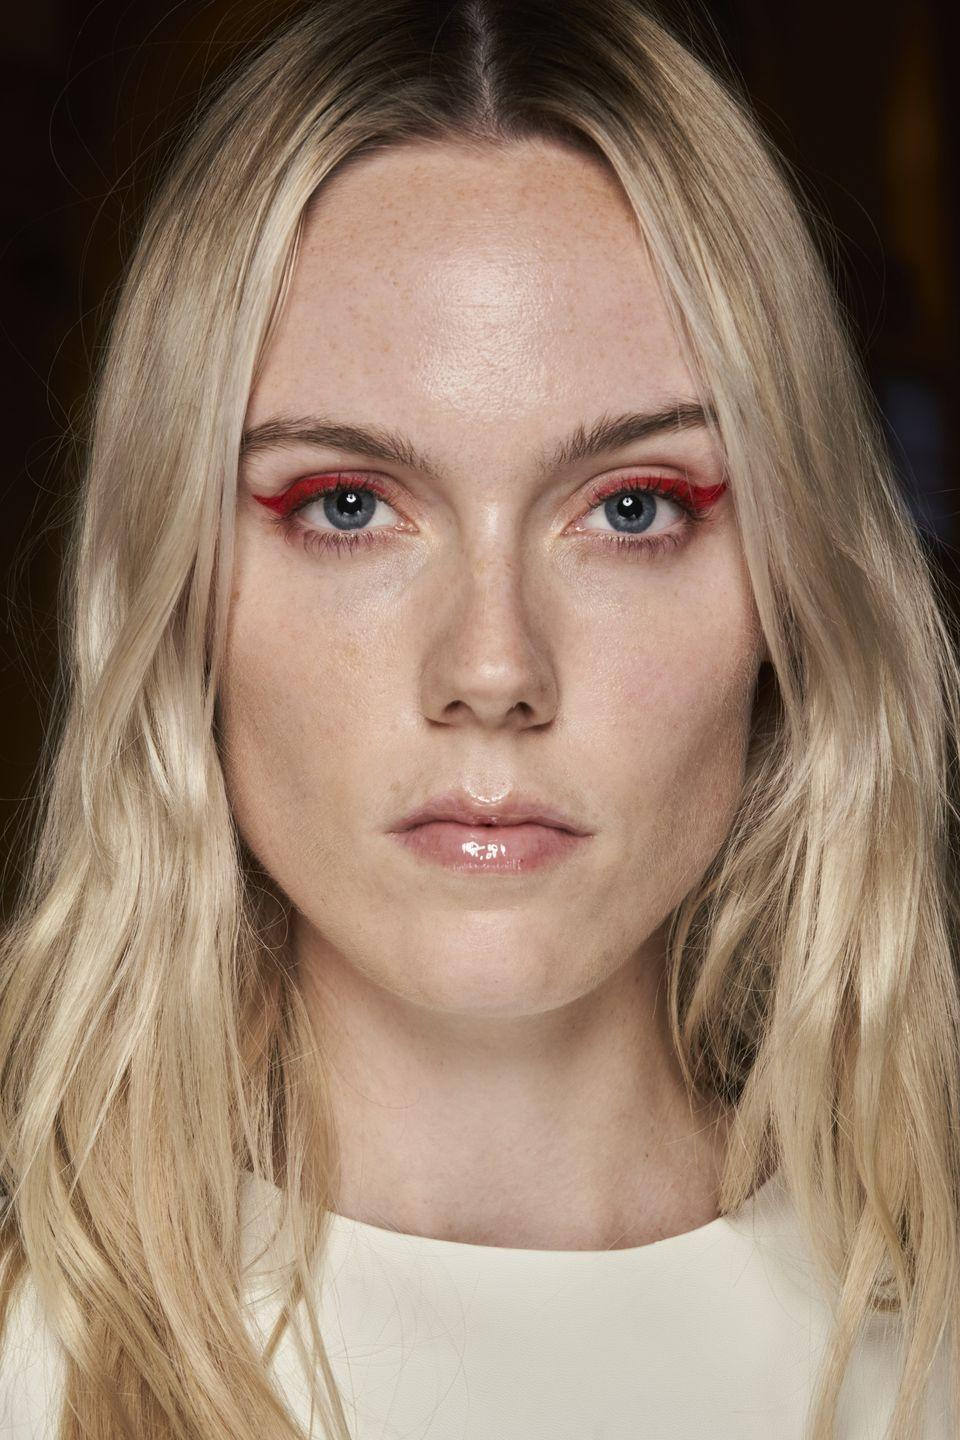 <p>Switch up your go-to feline cat eye with some scarlet red liquid liner in place of the classic black.</p>